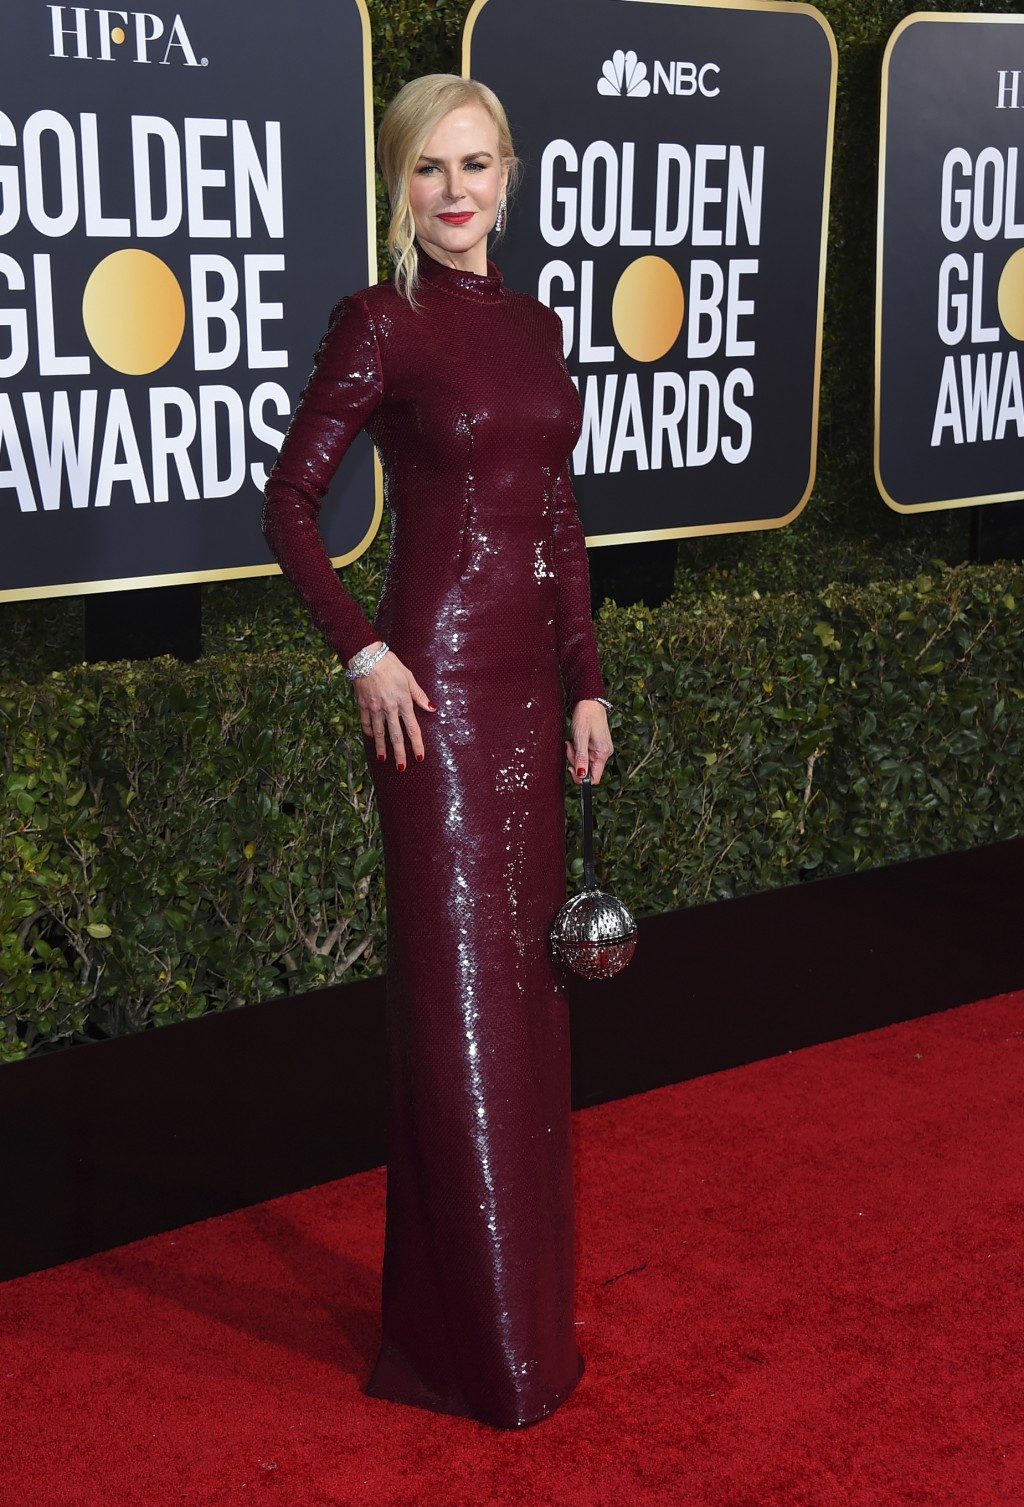 Nicole Kidman arrives at the 76th annual Golden Globe Awards at the Beverly Hilton Hotel on Sunday, Jan. 6, 2019, in Beverly Hills, Calif. (Photo by J